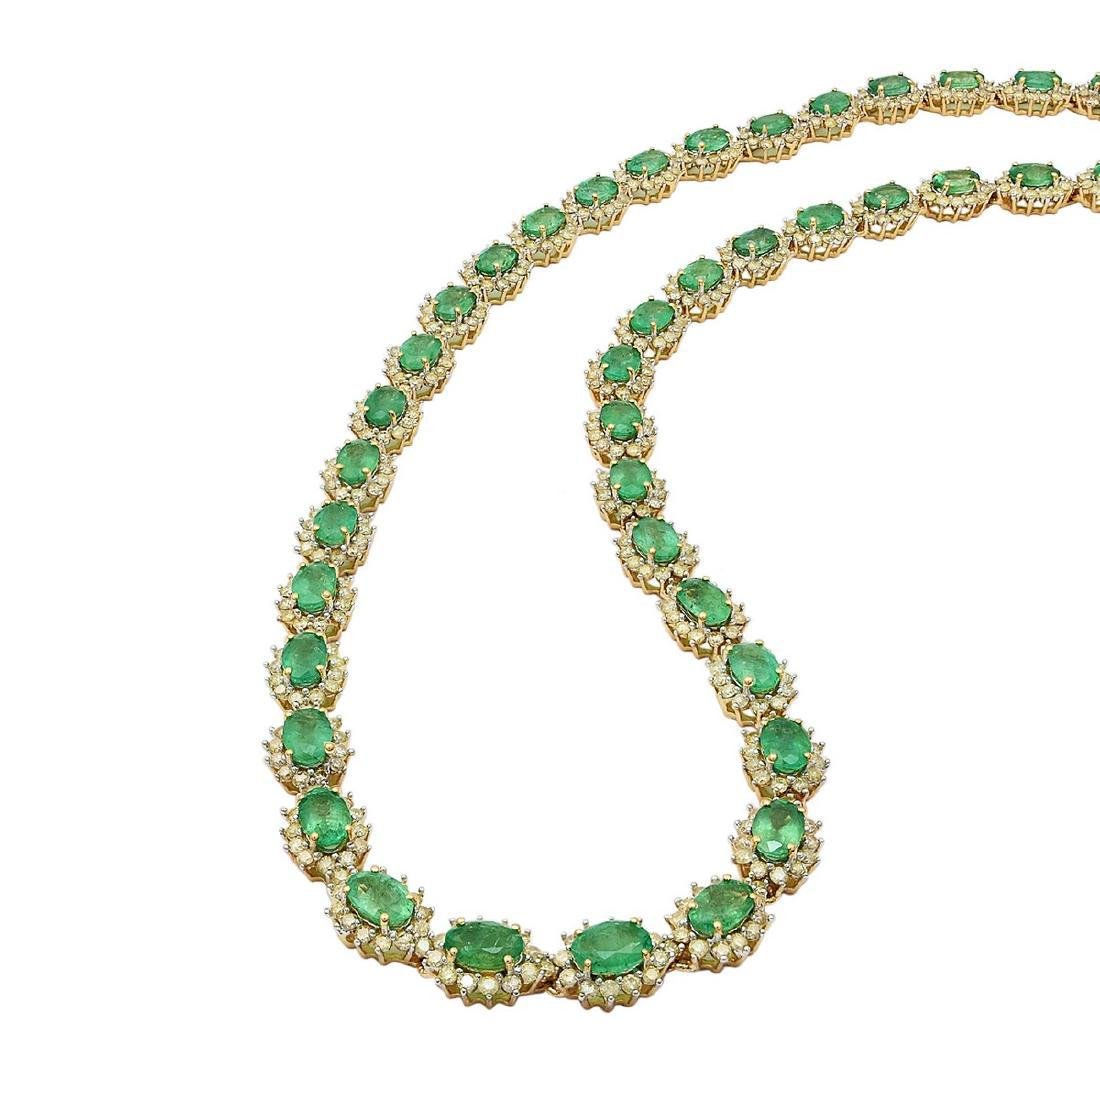 14K Yellow Gold 18.10ct Emerald 7.91ct Diamond Necklace